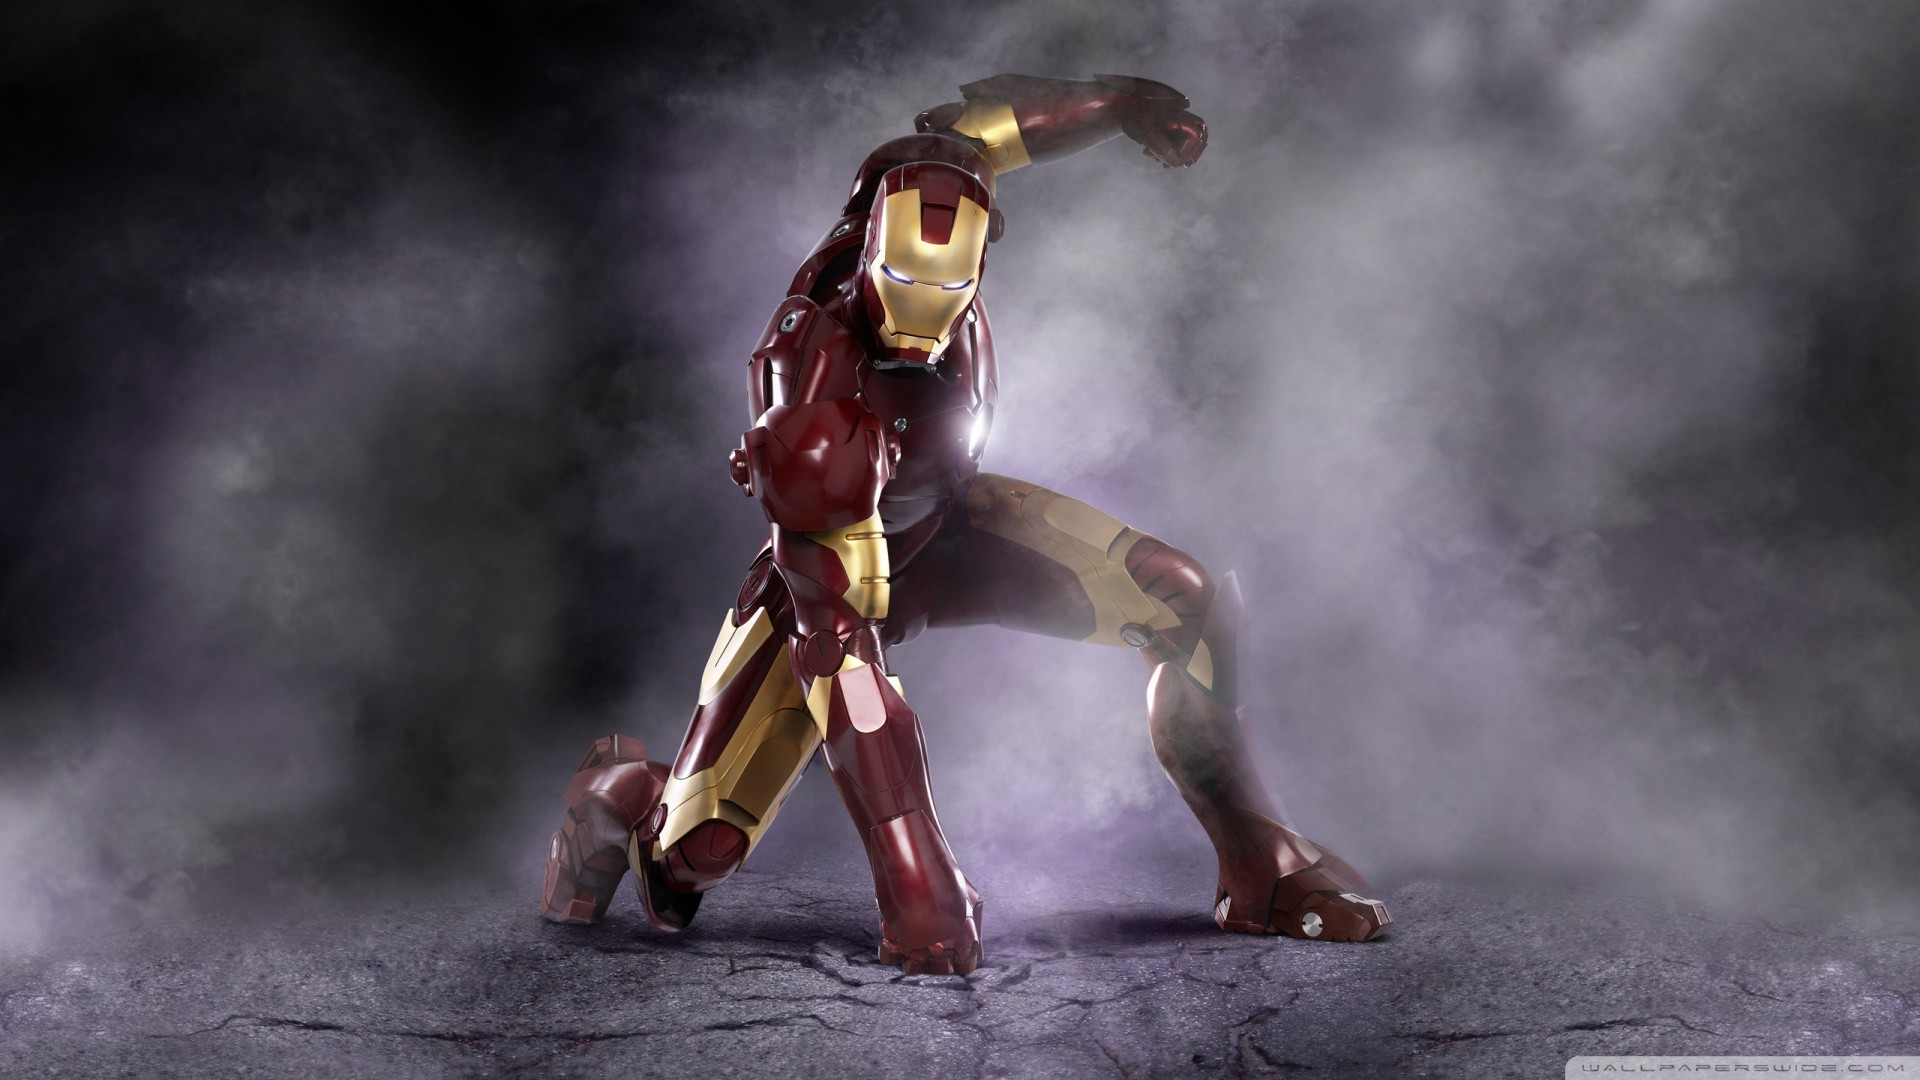 1920x1080 Interesting Iron Man HDQ Images Collection: 780884970,